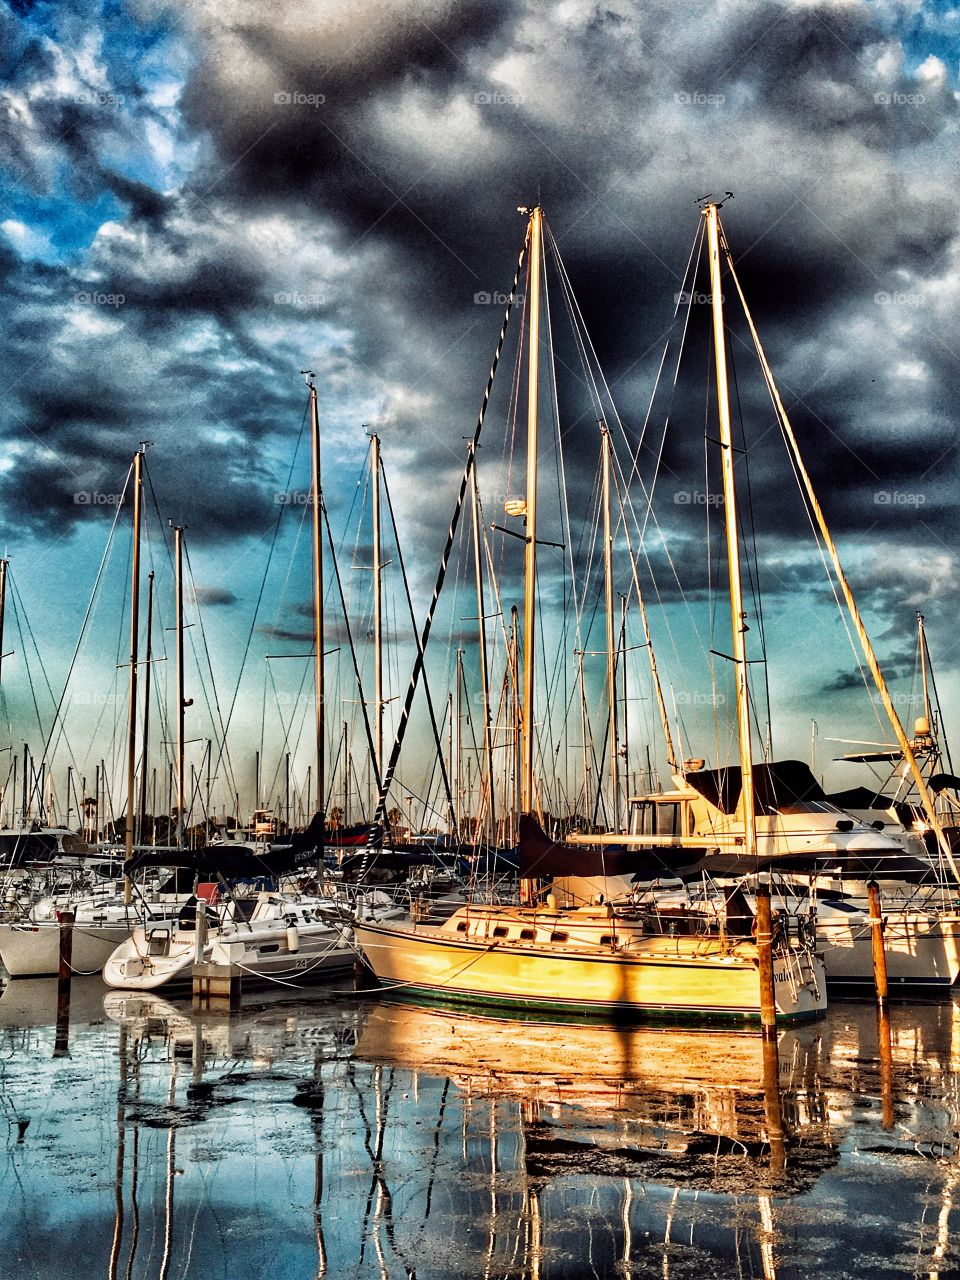 Storm clouds over FL marina.